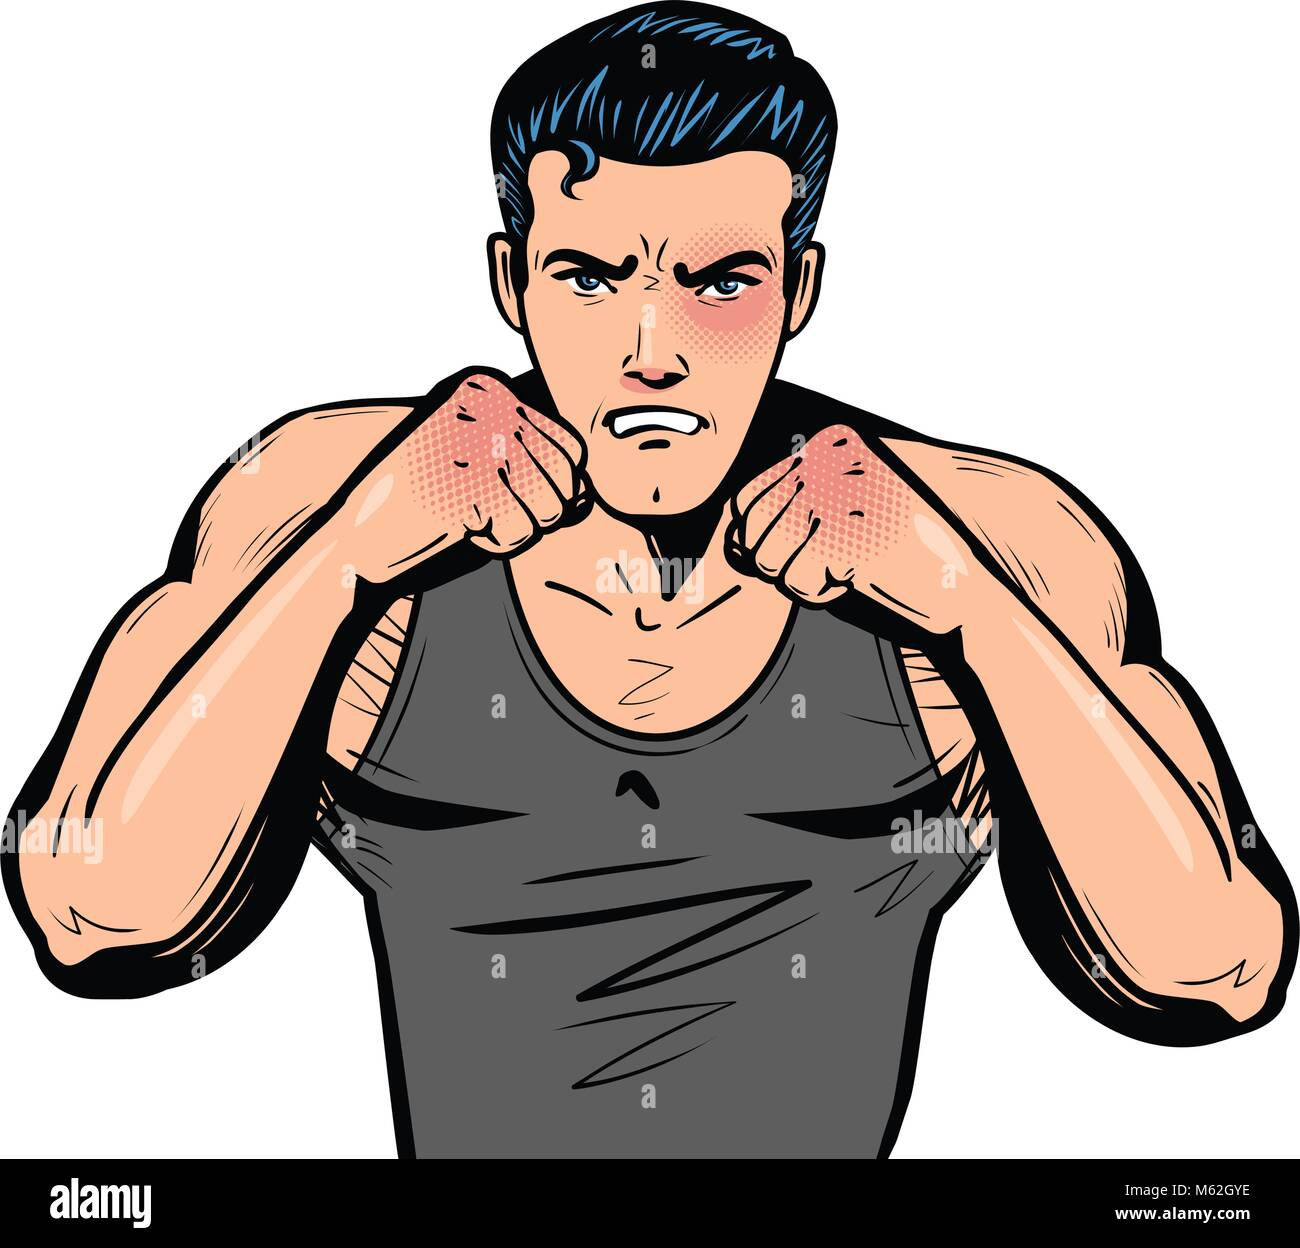 Fighter with fists. Fight club, combat, fighting or boxing in pop art retro comic style. Cartoon vector illustration - Stock Vector